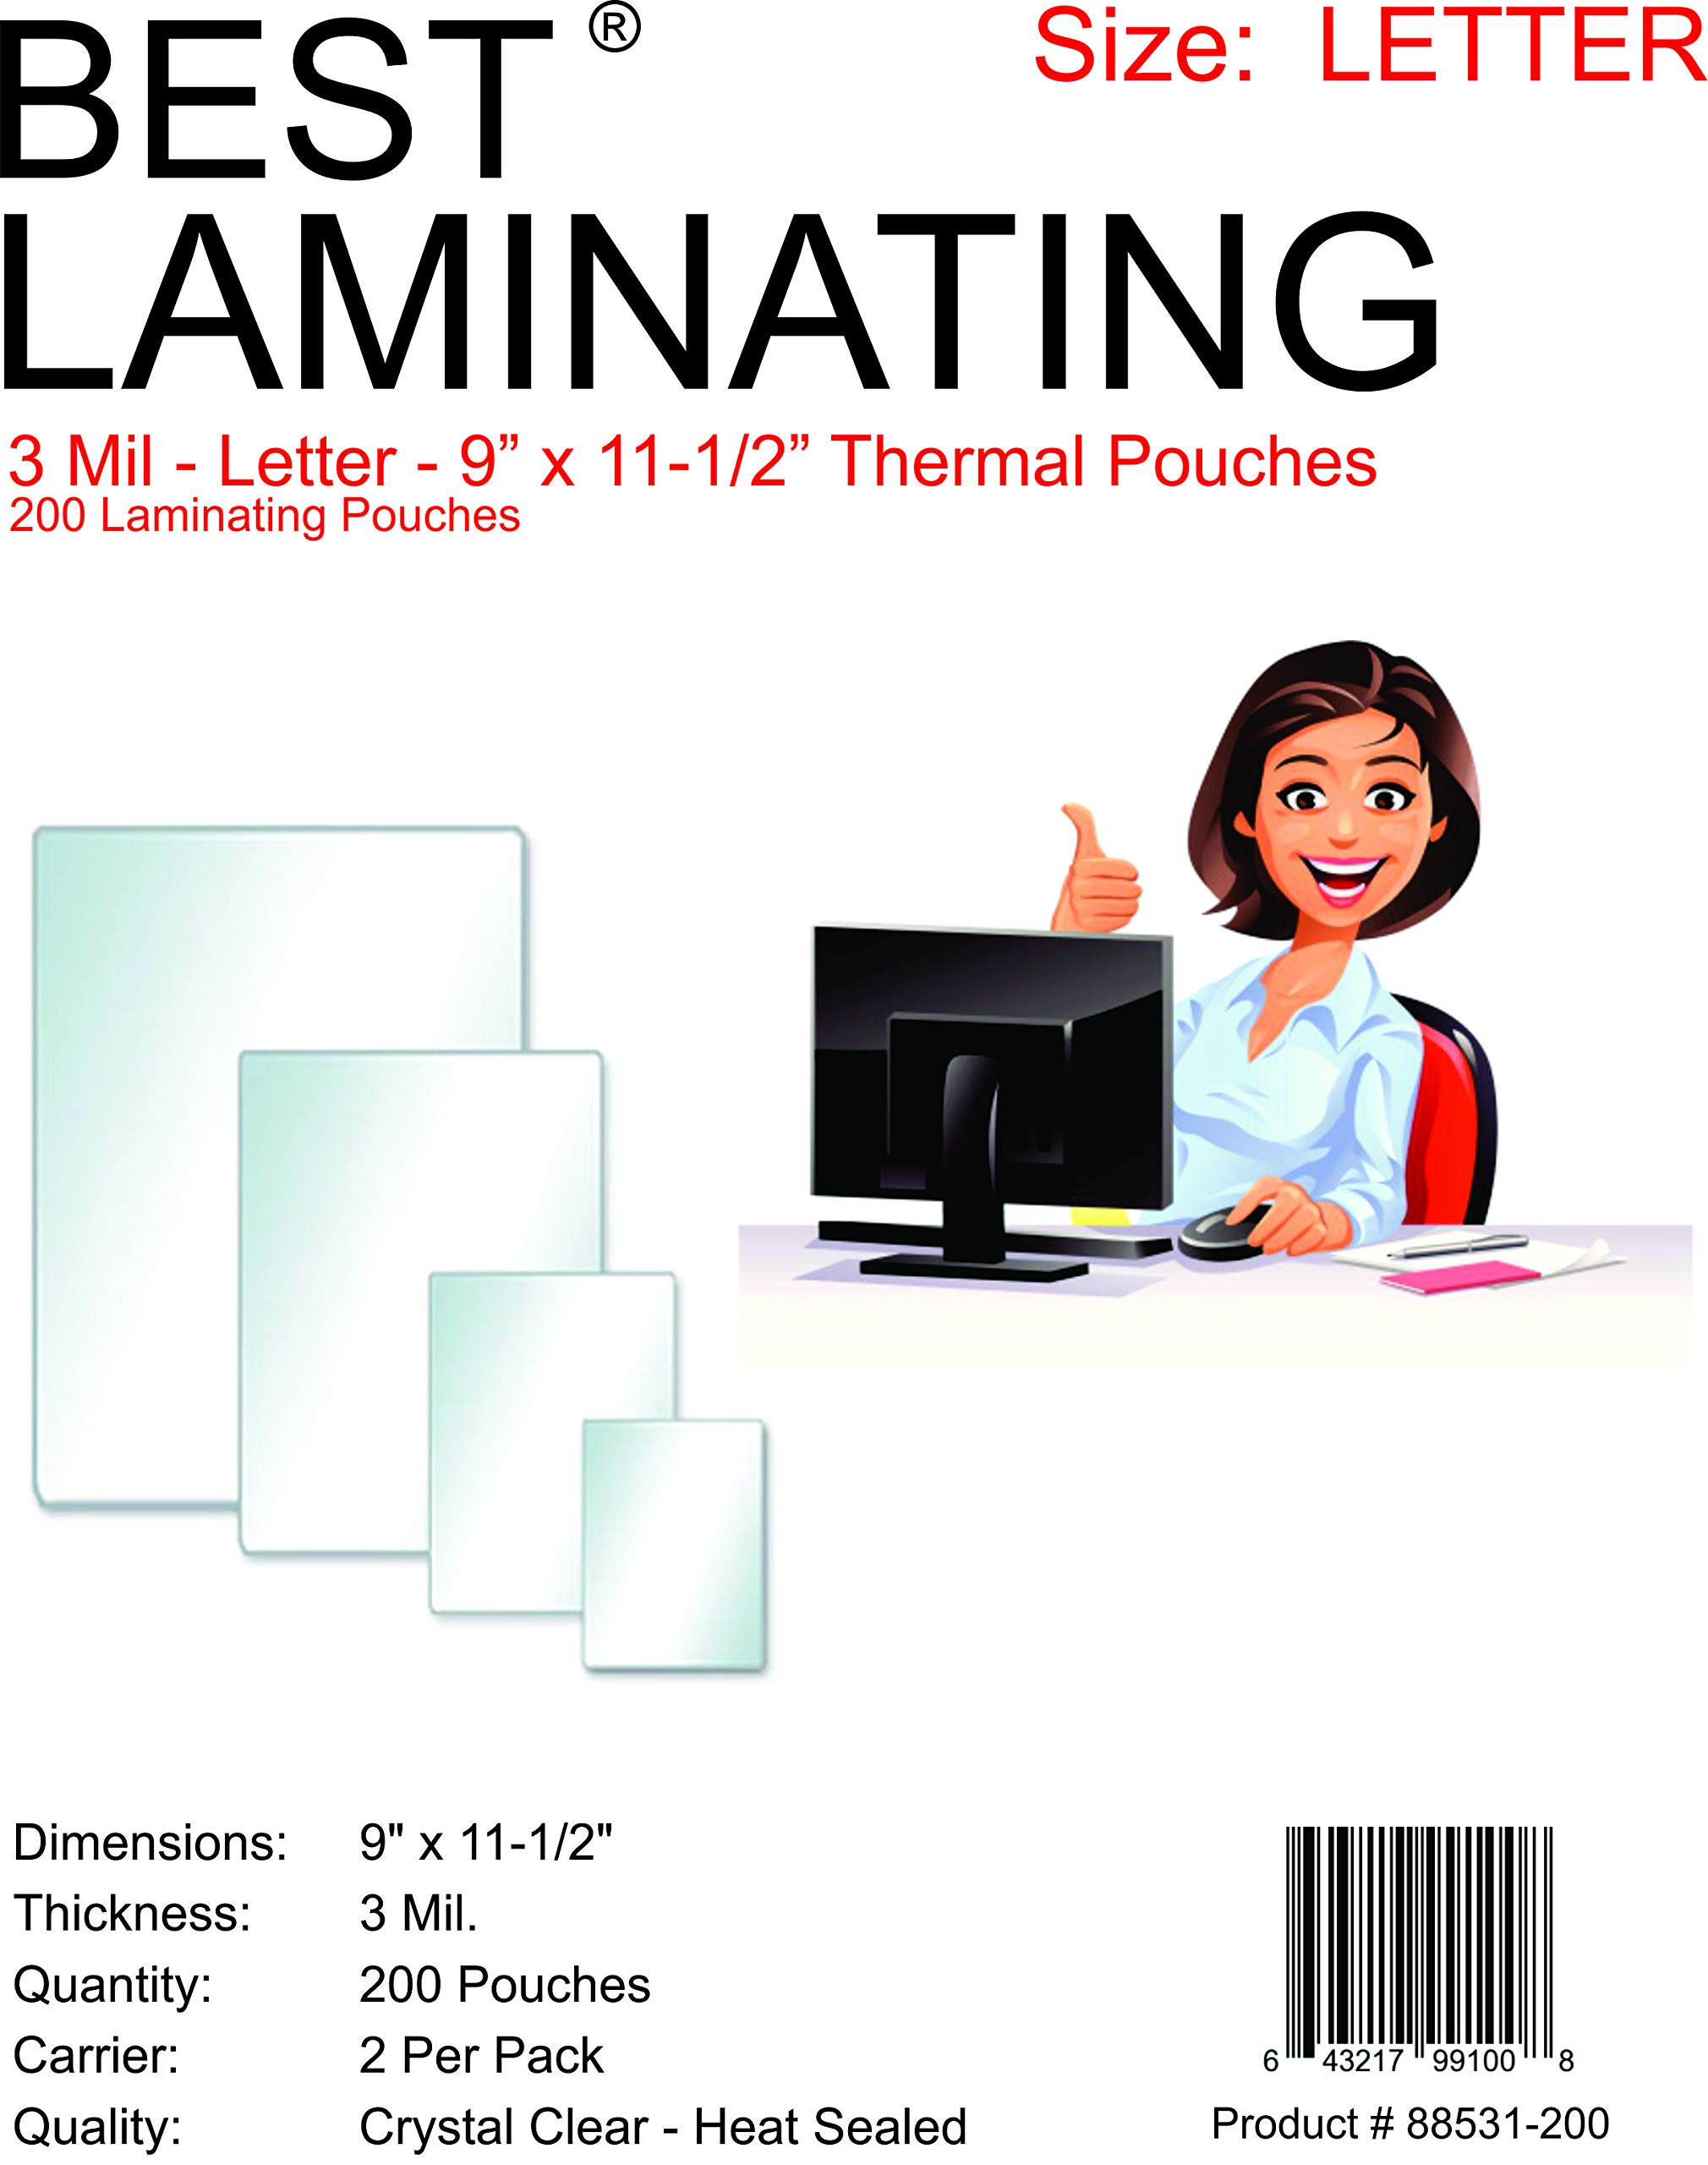 Best Laminating 200 Pouches, 3 Mil Clear Letter Size, Thermal Laminating Pouches, 9'' X 11.5'' (200 Pouches) by Best Laminating®